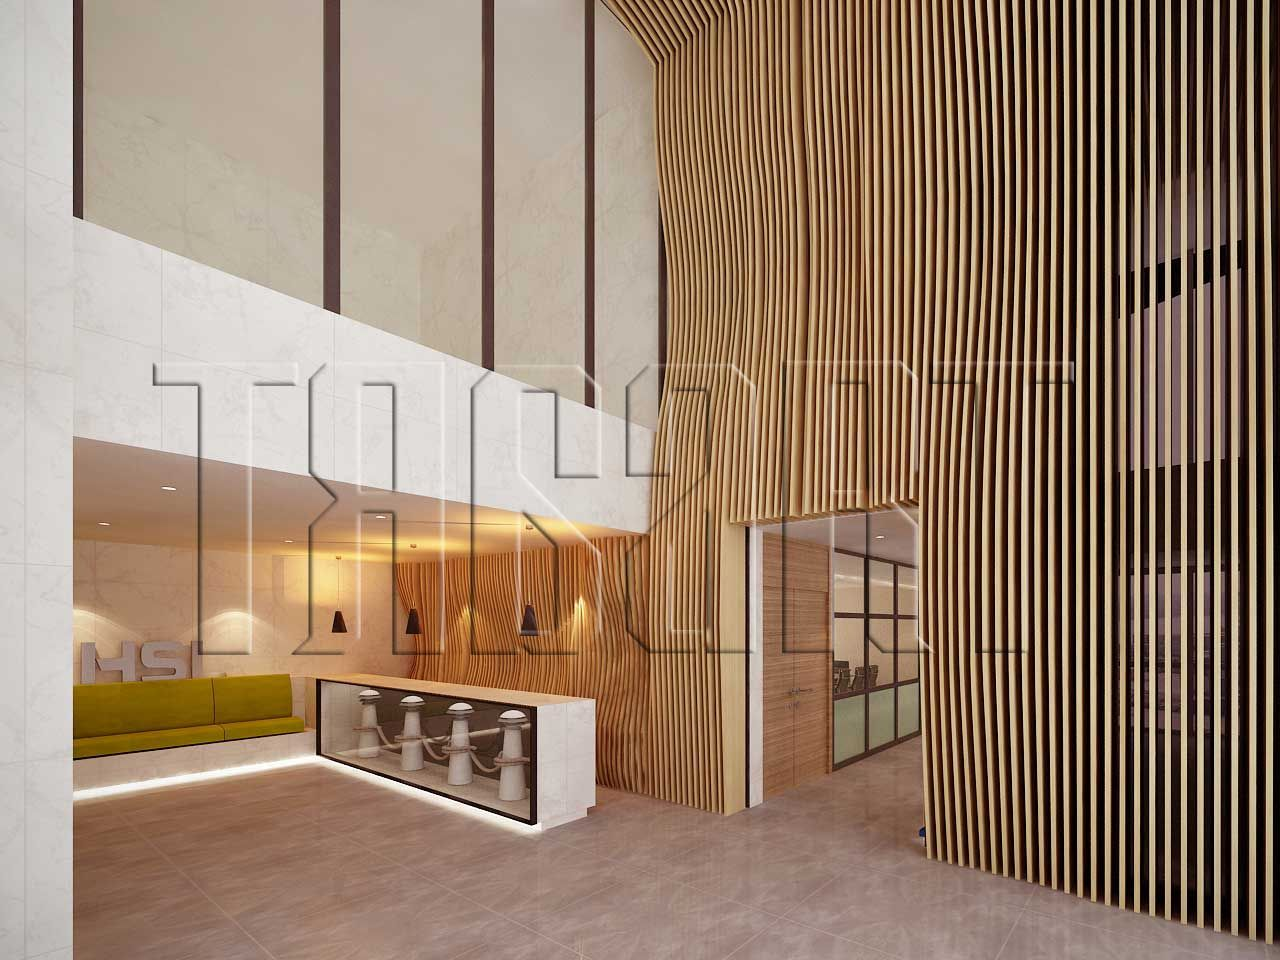 How to create a feature wall with photos - Interior Design Using Natural Wave Like Forms To Create A Feature Wall In The Reception Area